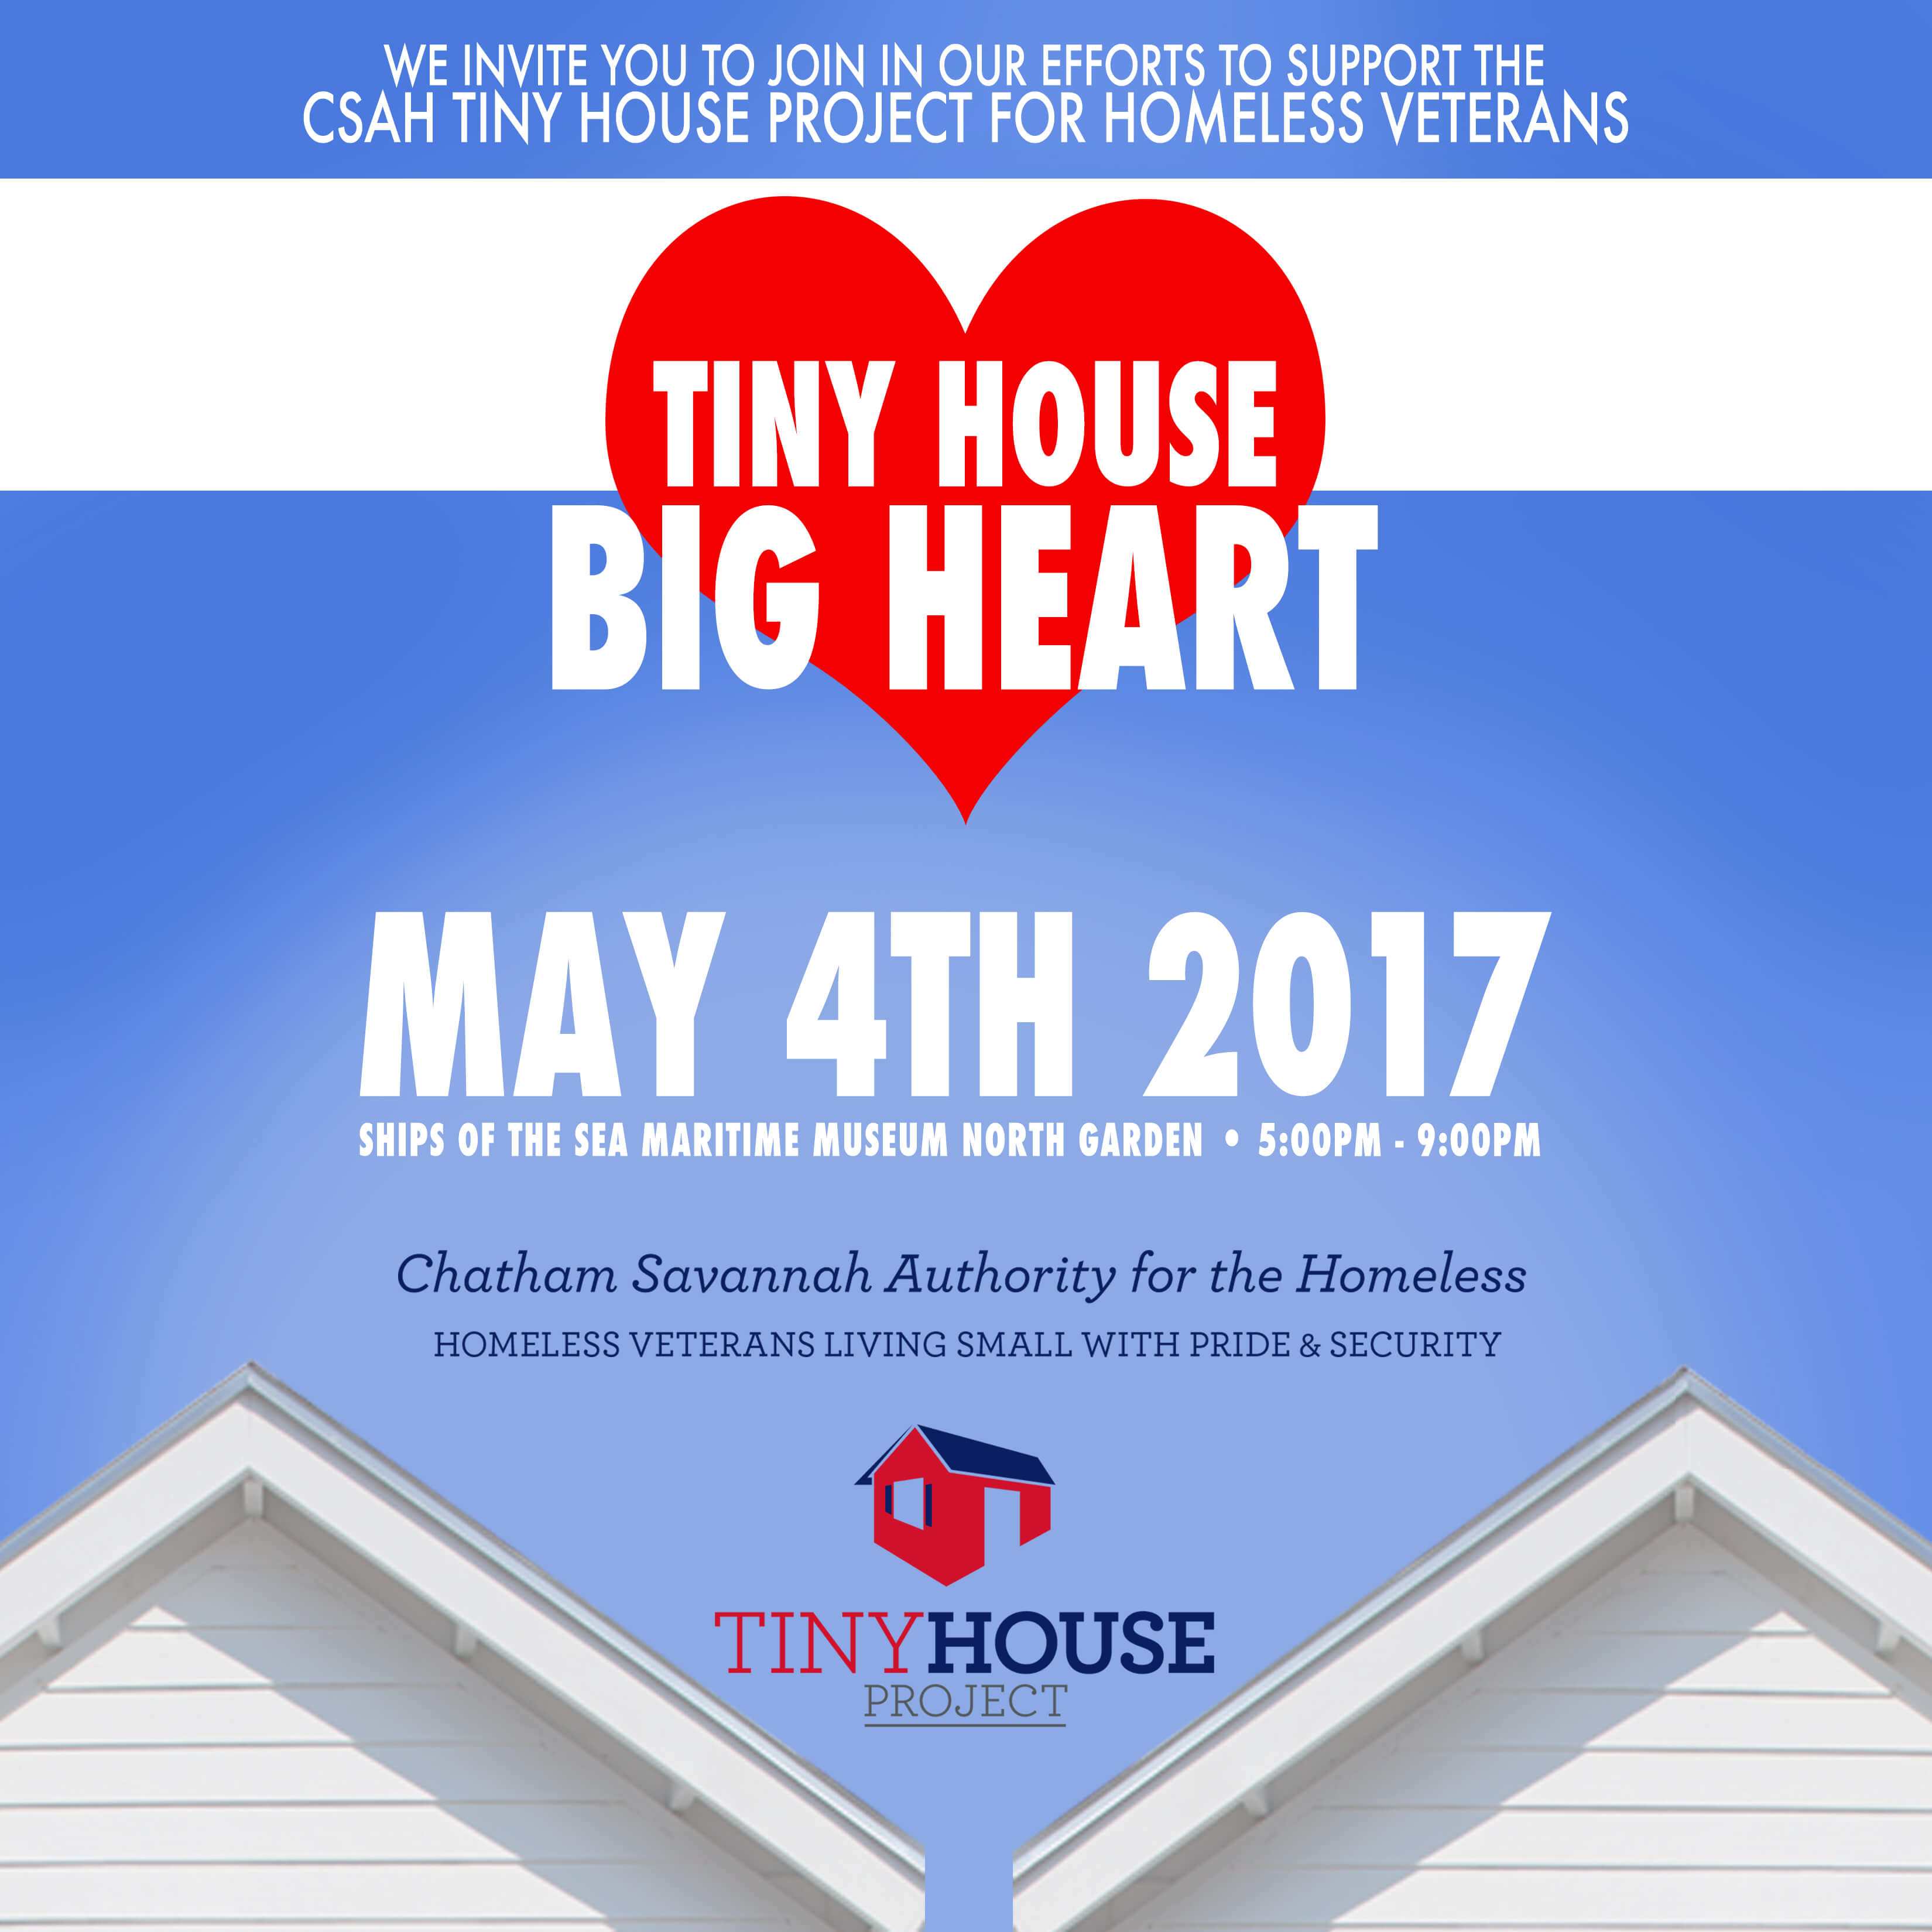 Tiny House, Big Heart